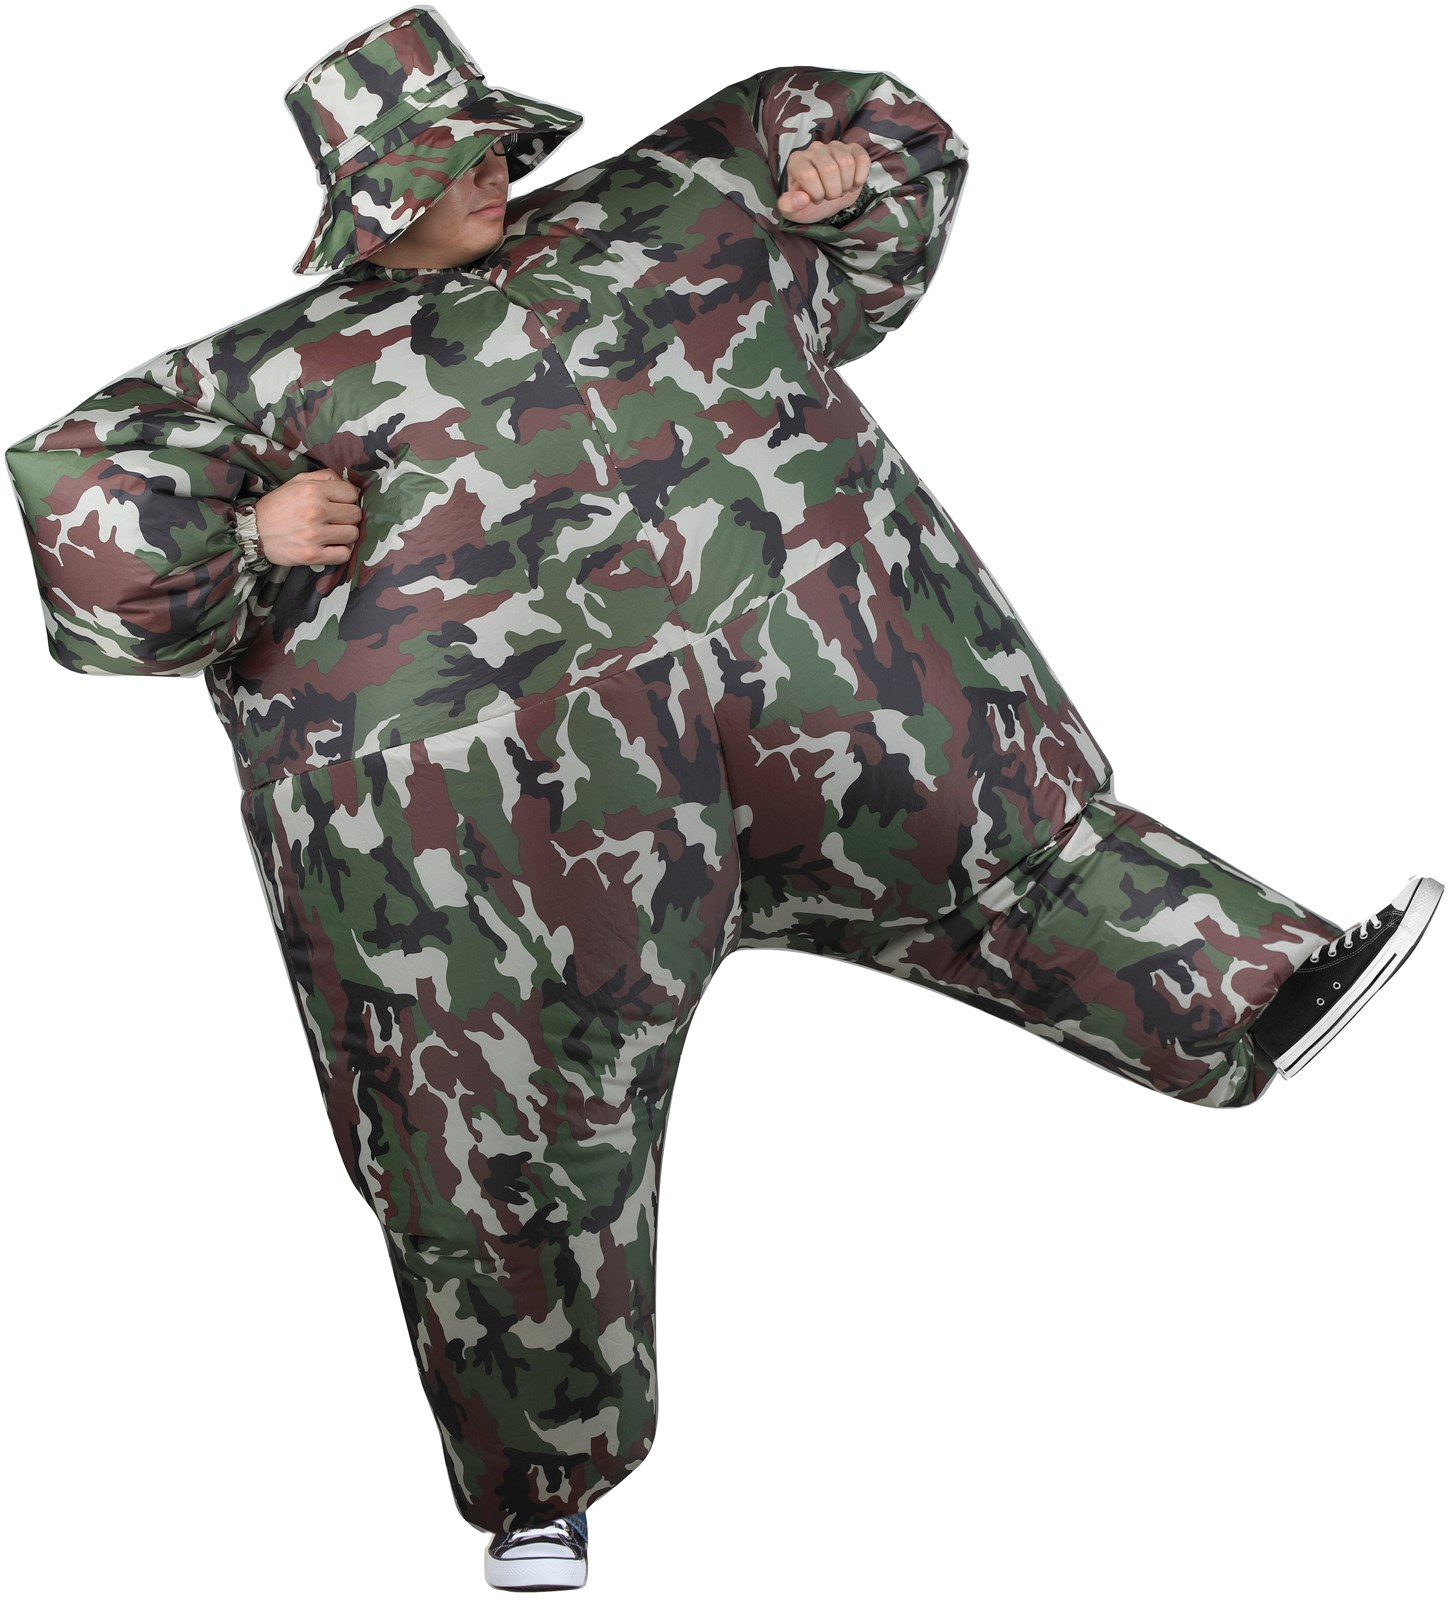 Inflatable Adult Camosuit Costume